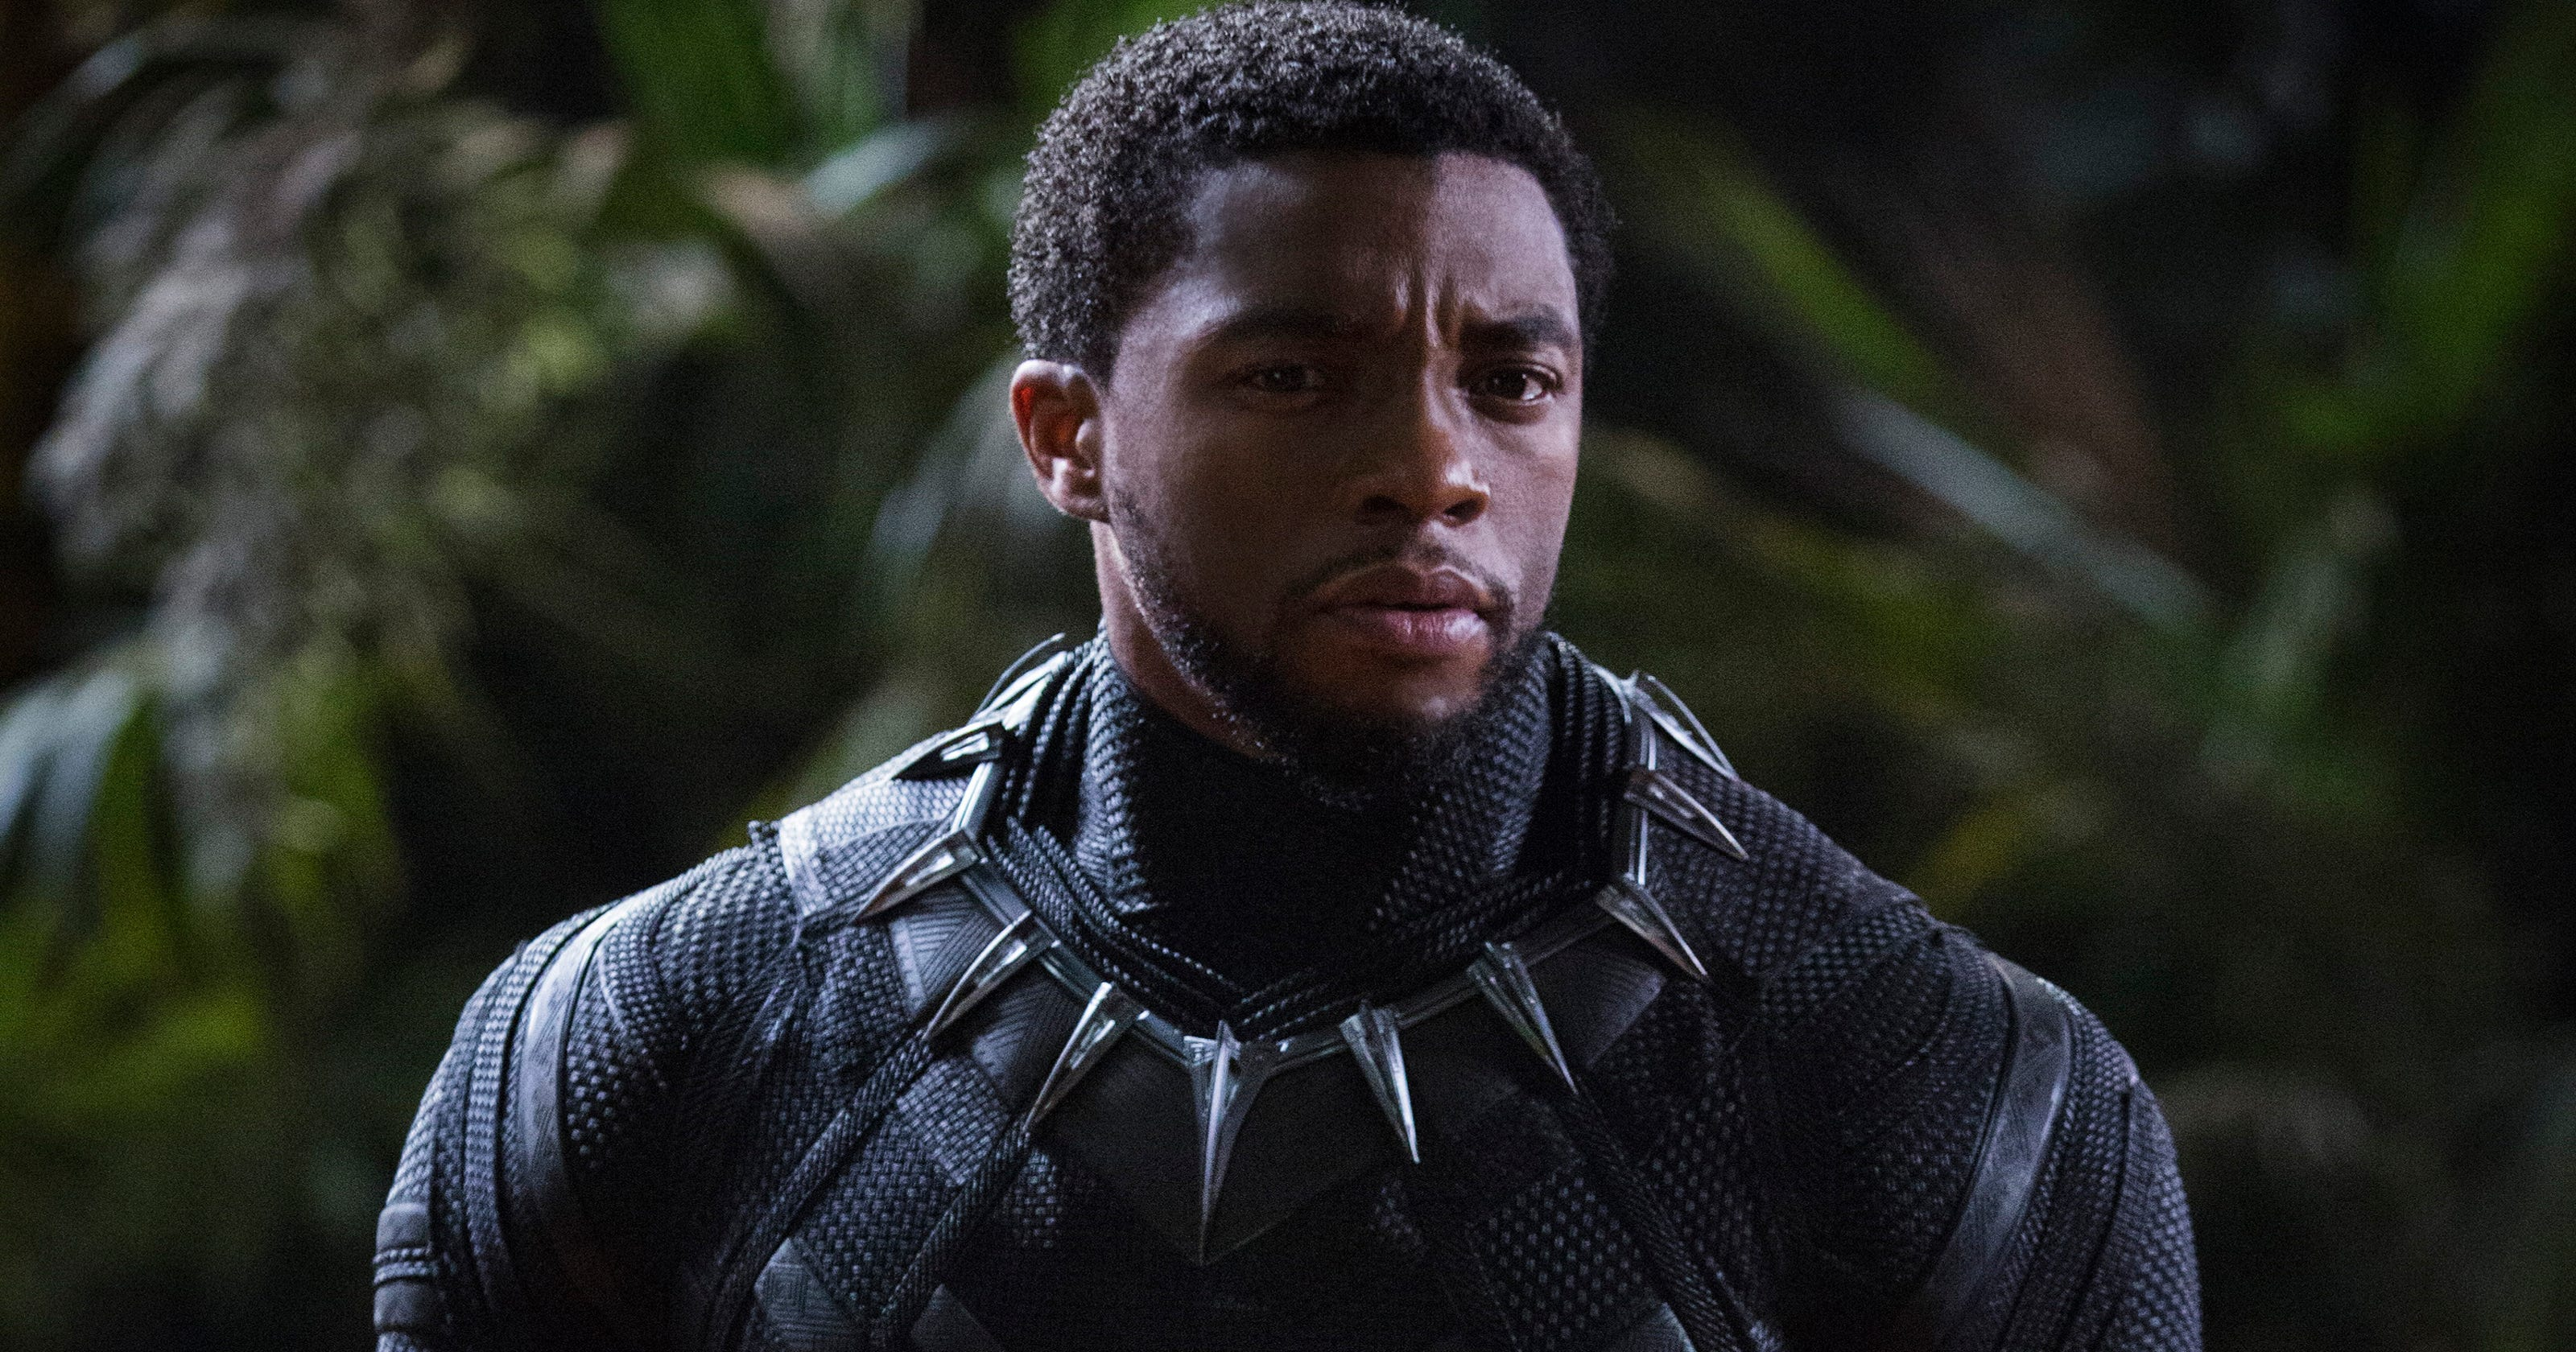 e679b8240 Daring, diverse 'Black Panther' promises to be Hollywood's latest 'cultural  touchstone'